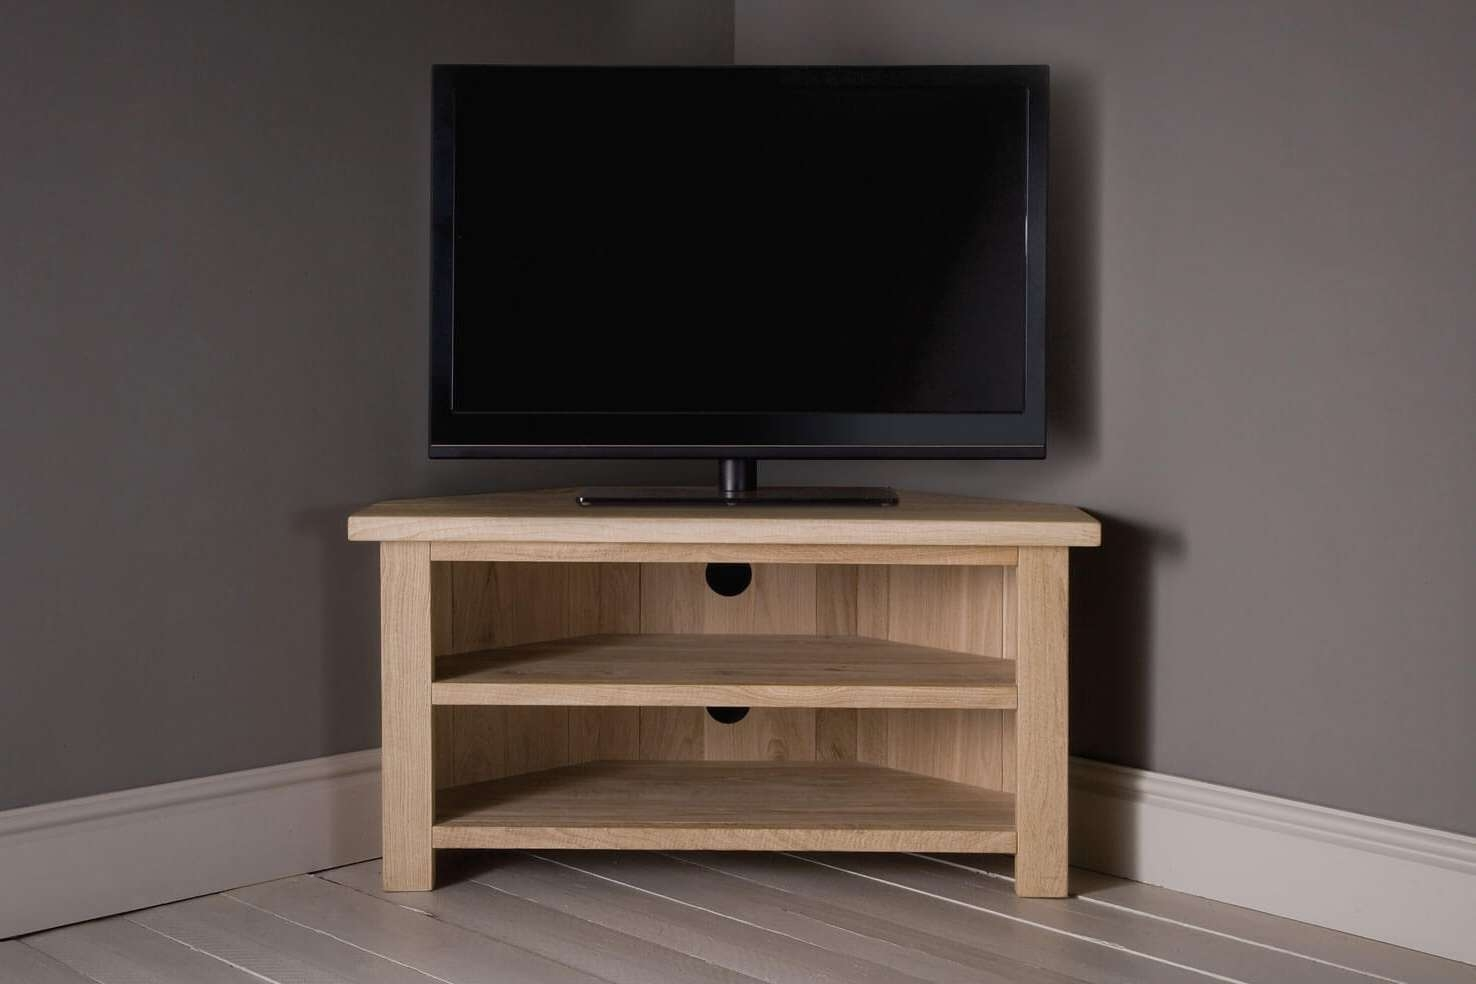 Oak Corner Tv Unit With Shelfindigo Furniture With Regard To Oak Corner Tv Cabinets (View 20 of 20)